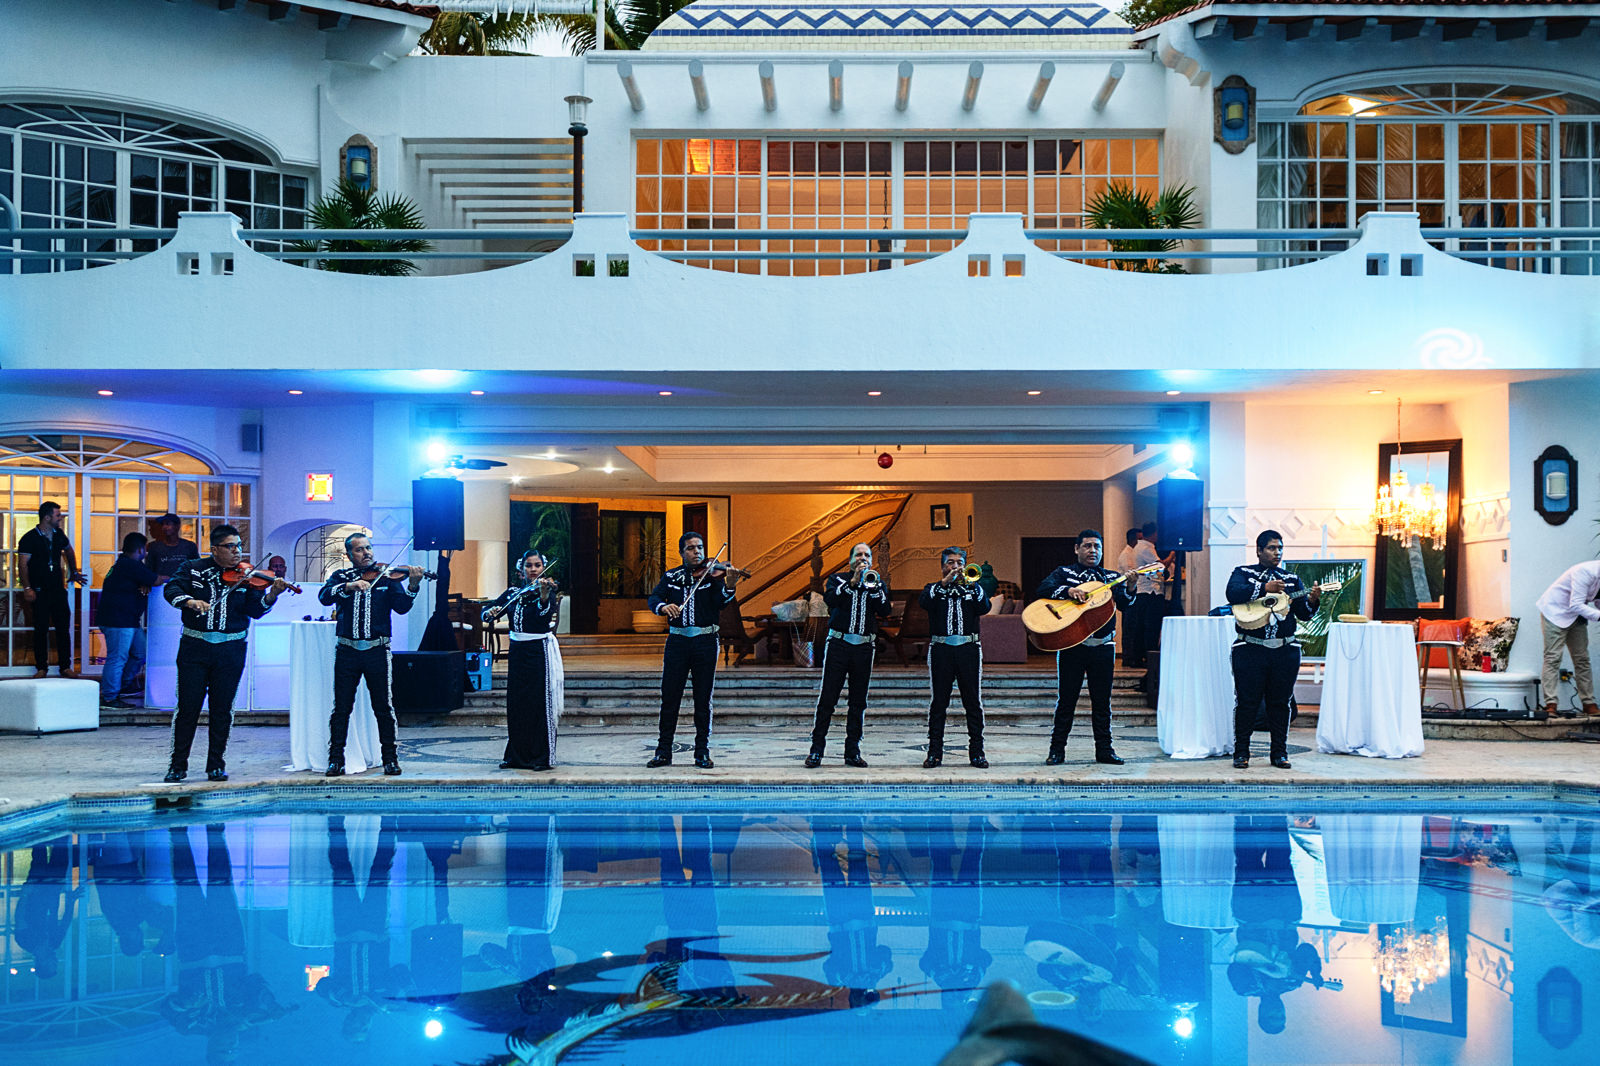 Mariachi band plays for all the wedding guests in the pool area at La Mansion Vallarta